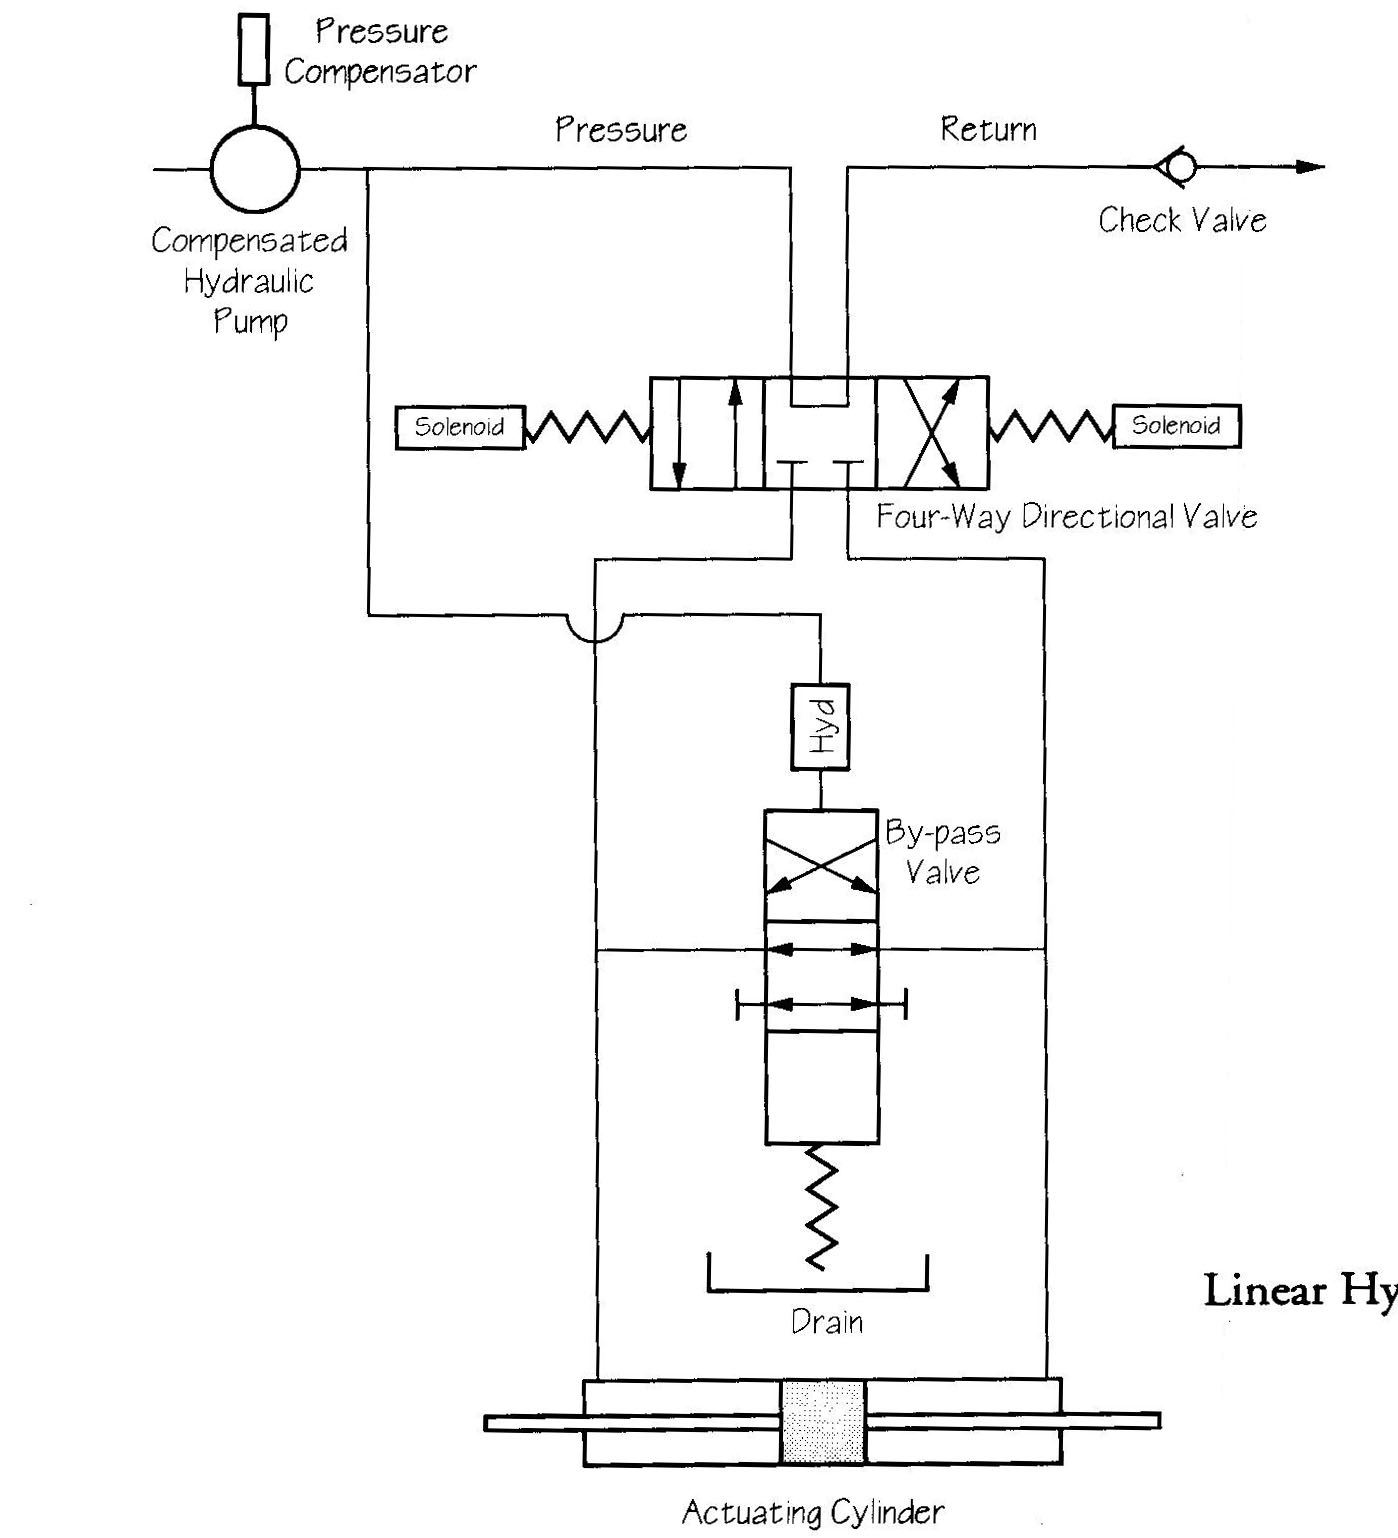 Tsps Engineering Manual Limit Switches Wiring Diagram Dc Travel Linear Hydraulic Power Unit